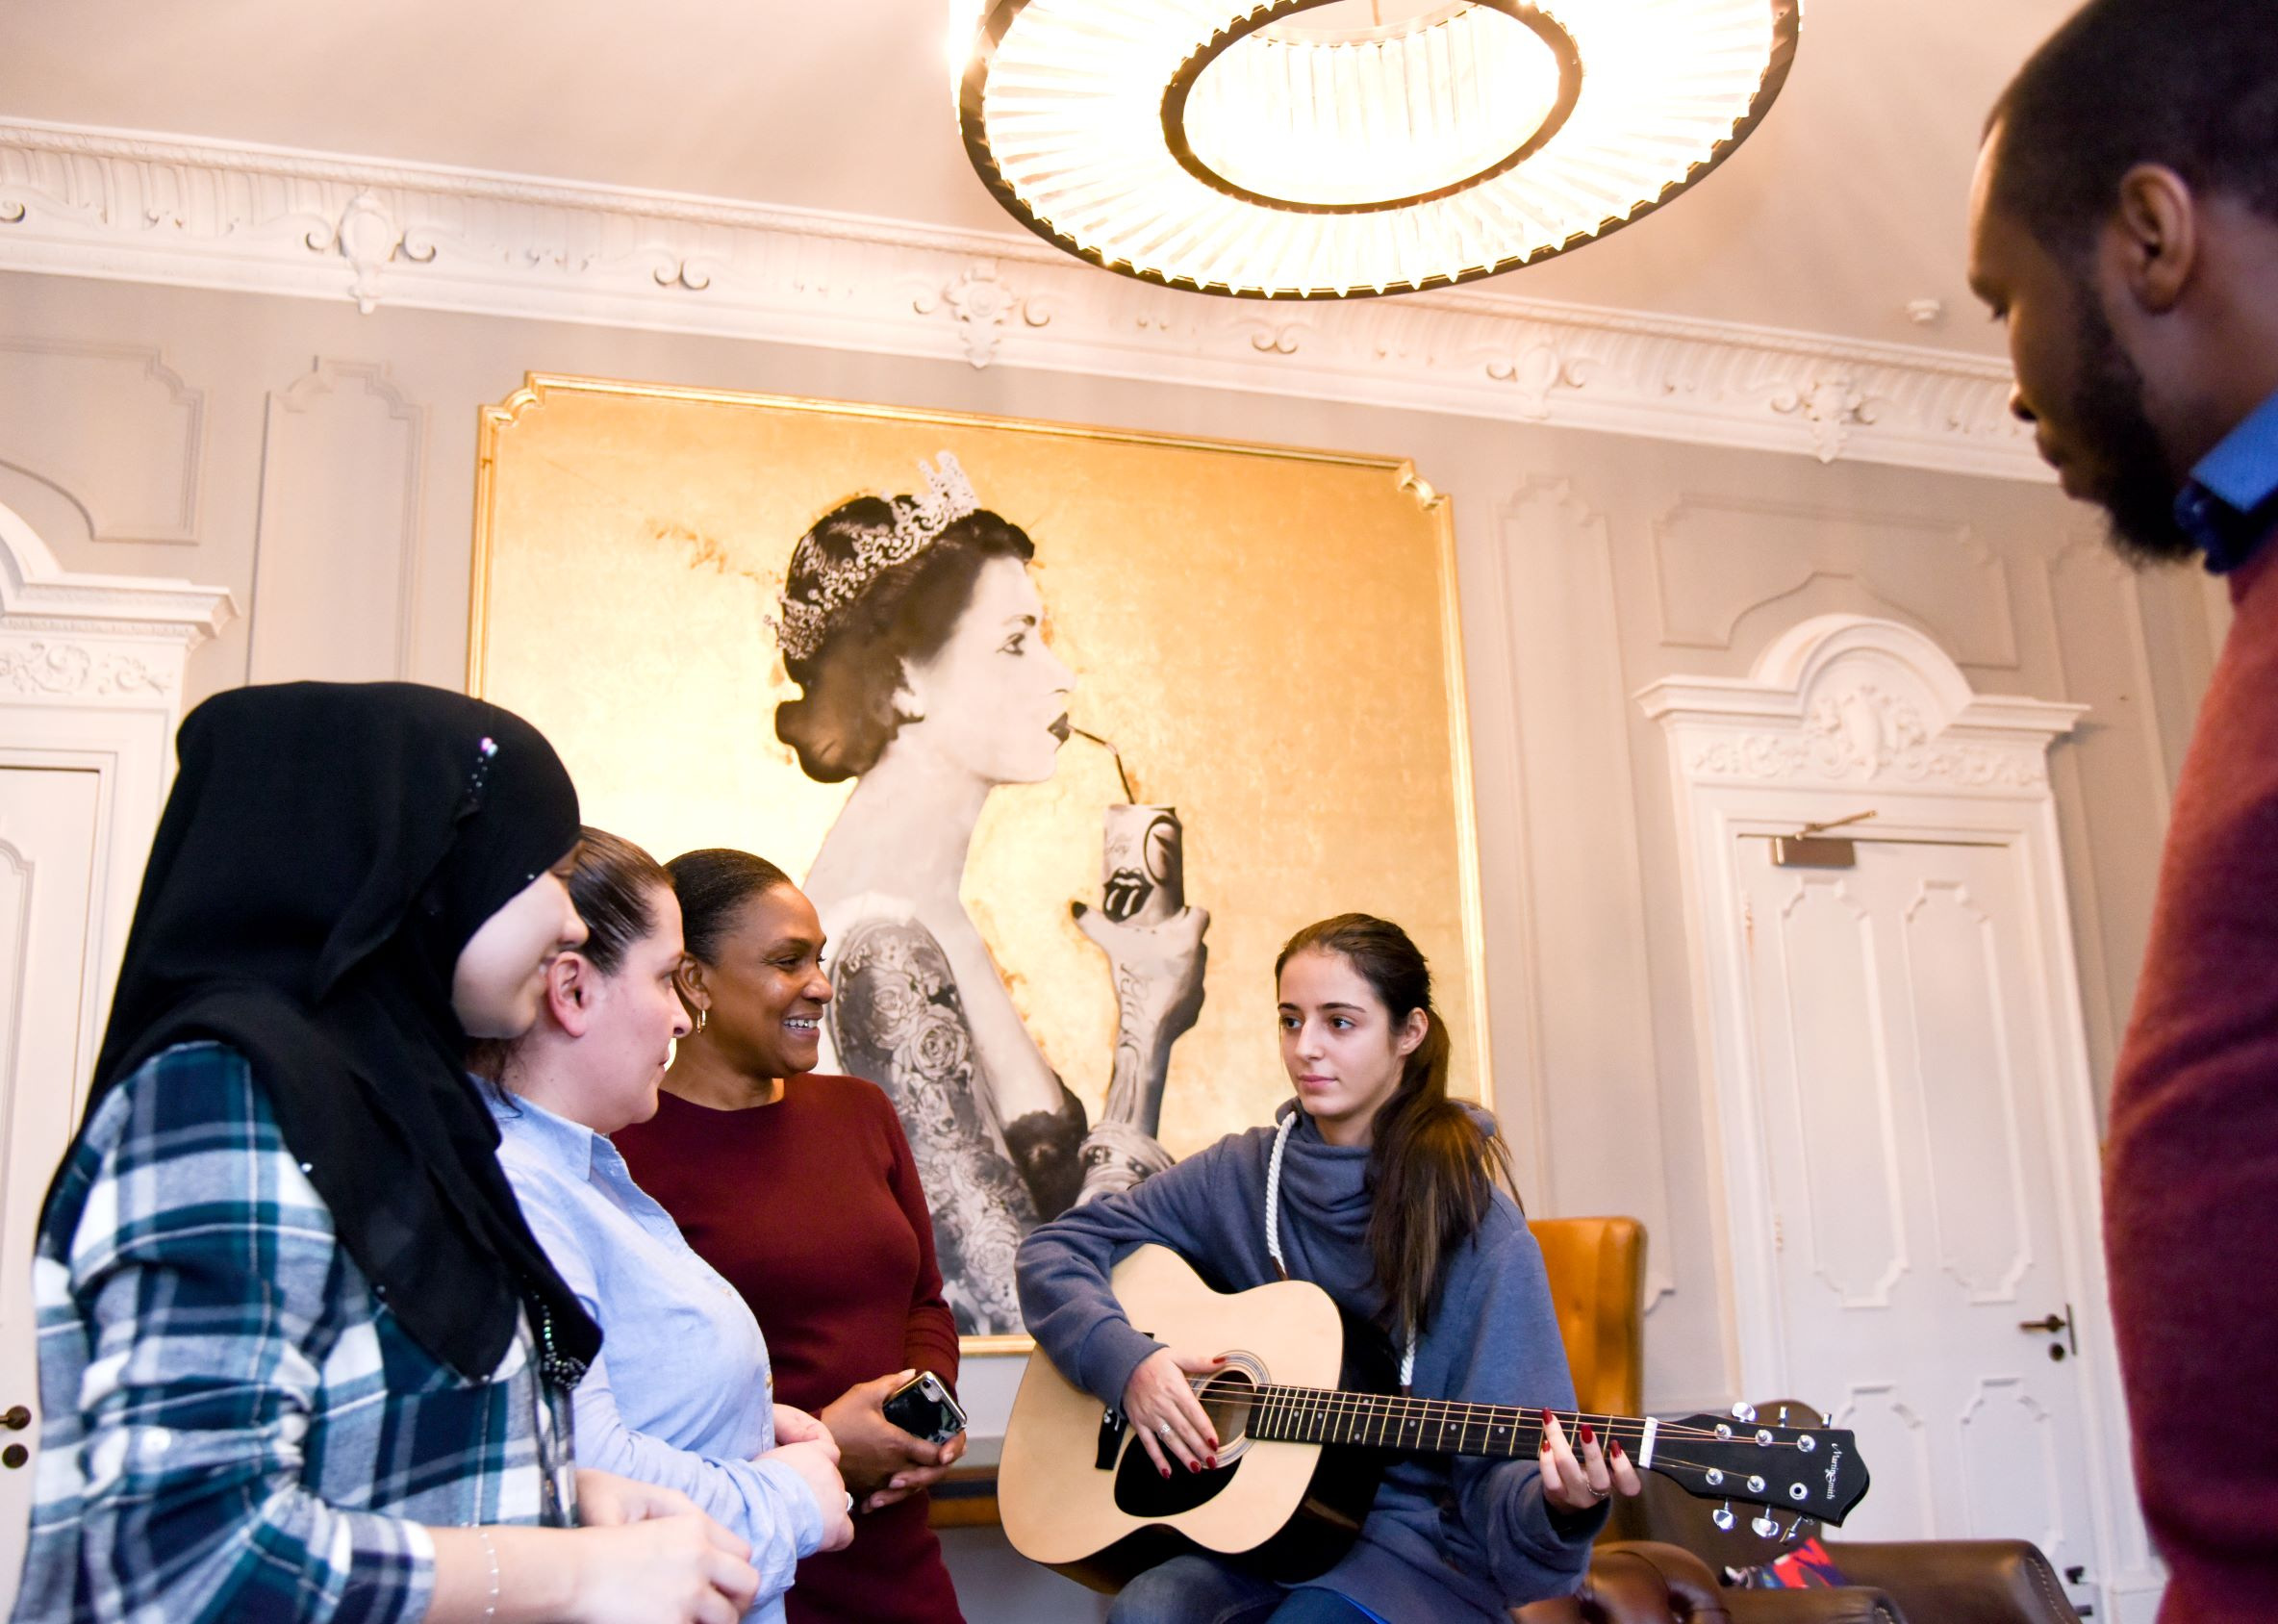 Woman playing guitar and students smiling